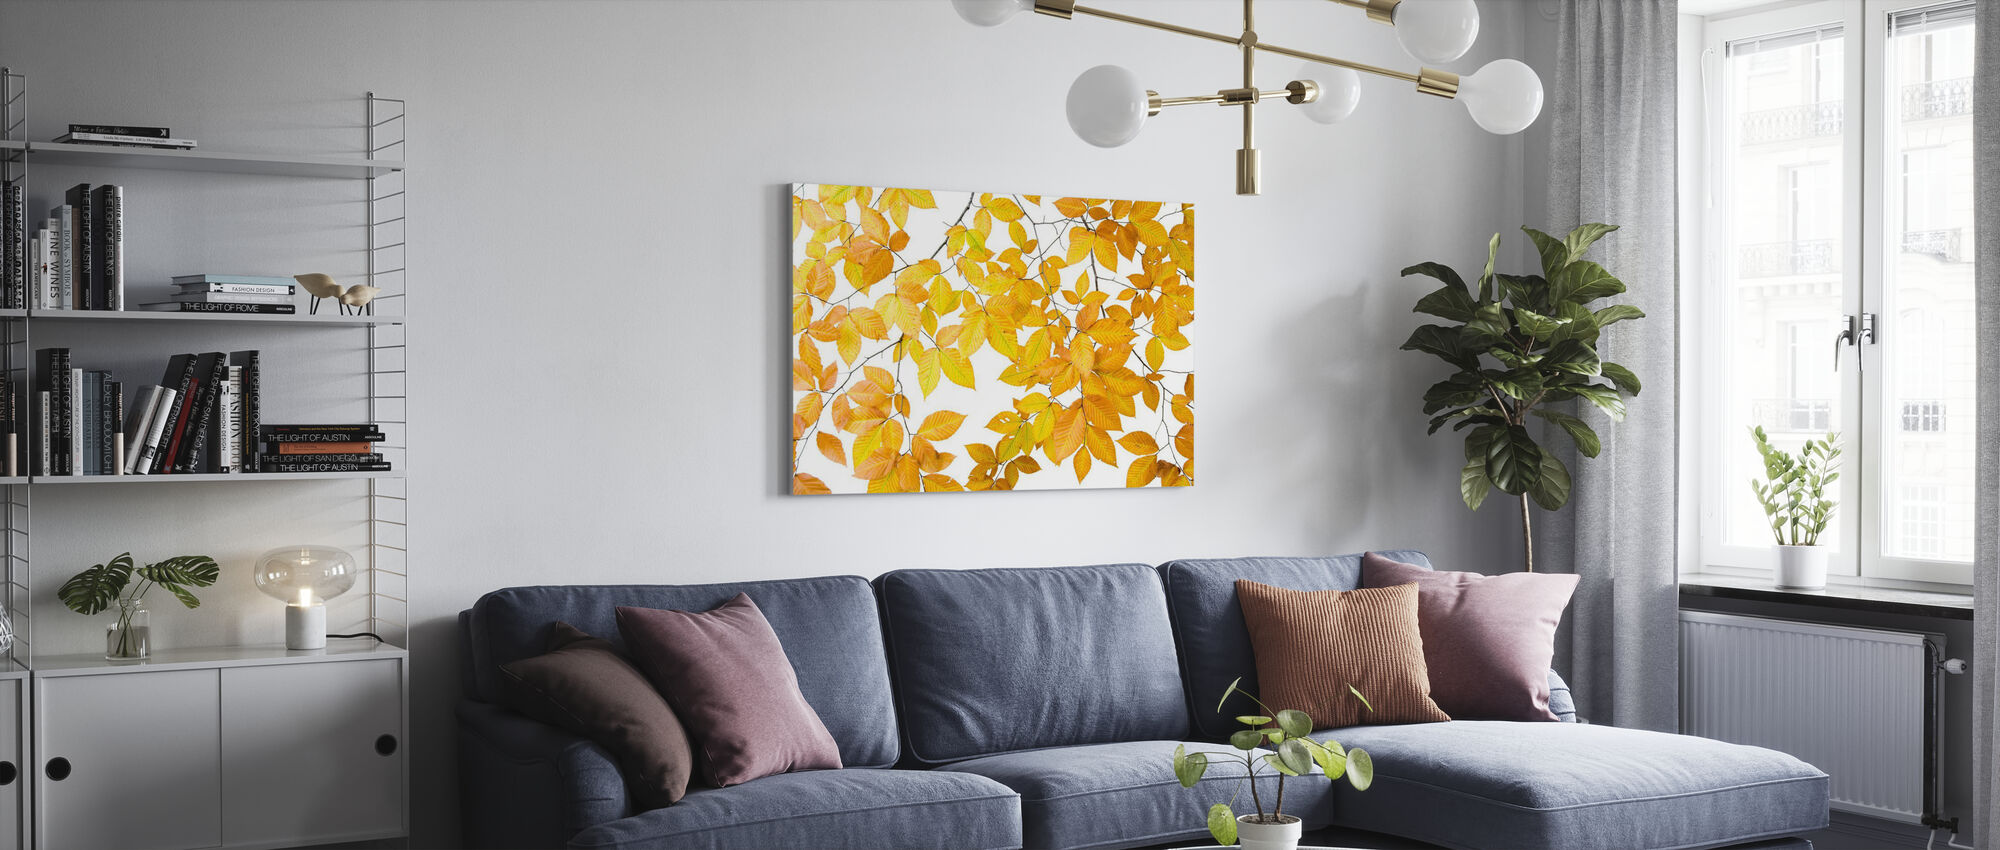 Yellow Leaves on White Background - Canvas print - Living Room